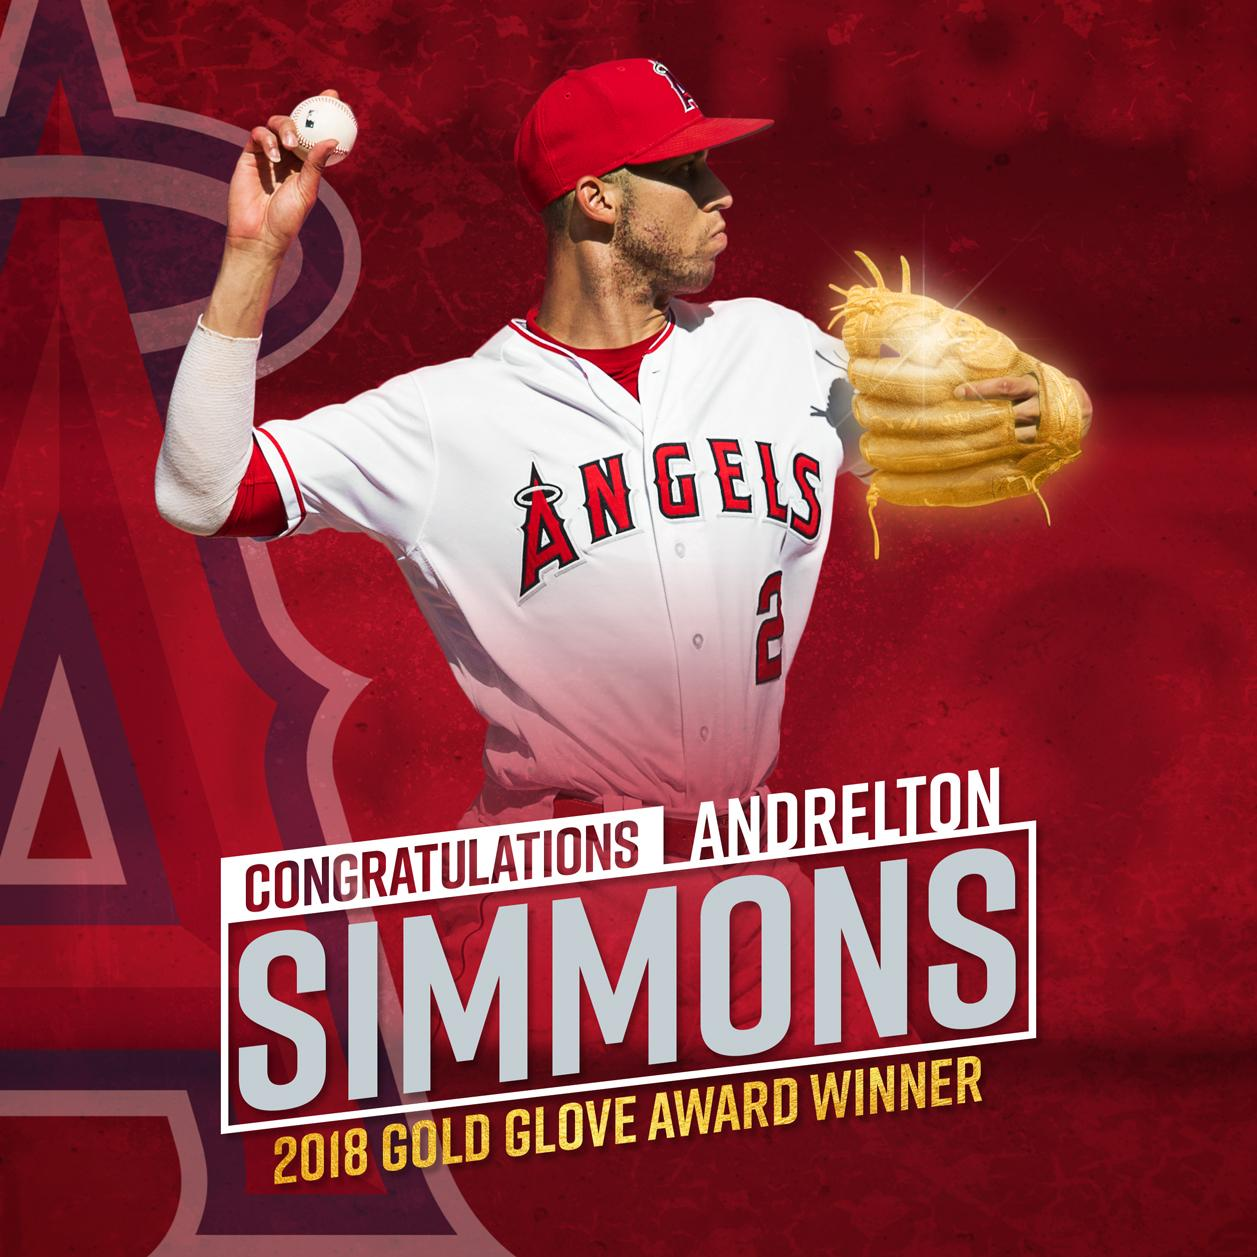 ��All that glitters is goOoOoOold��  Congratulations to @Andrelton on winning his second Gold Glove Award as an Angel! https://t.co/zh0metGFG6